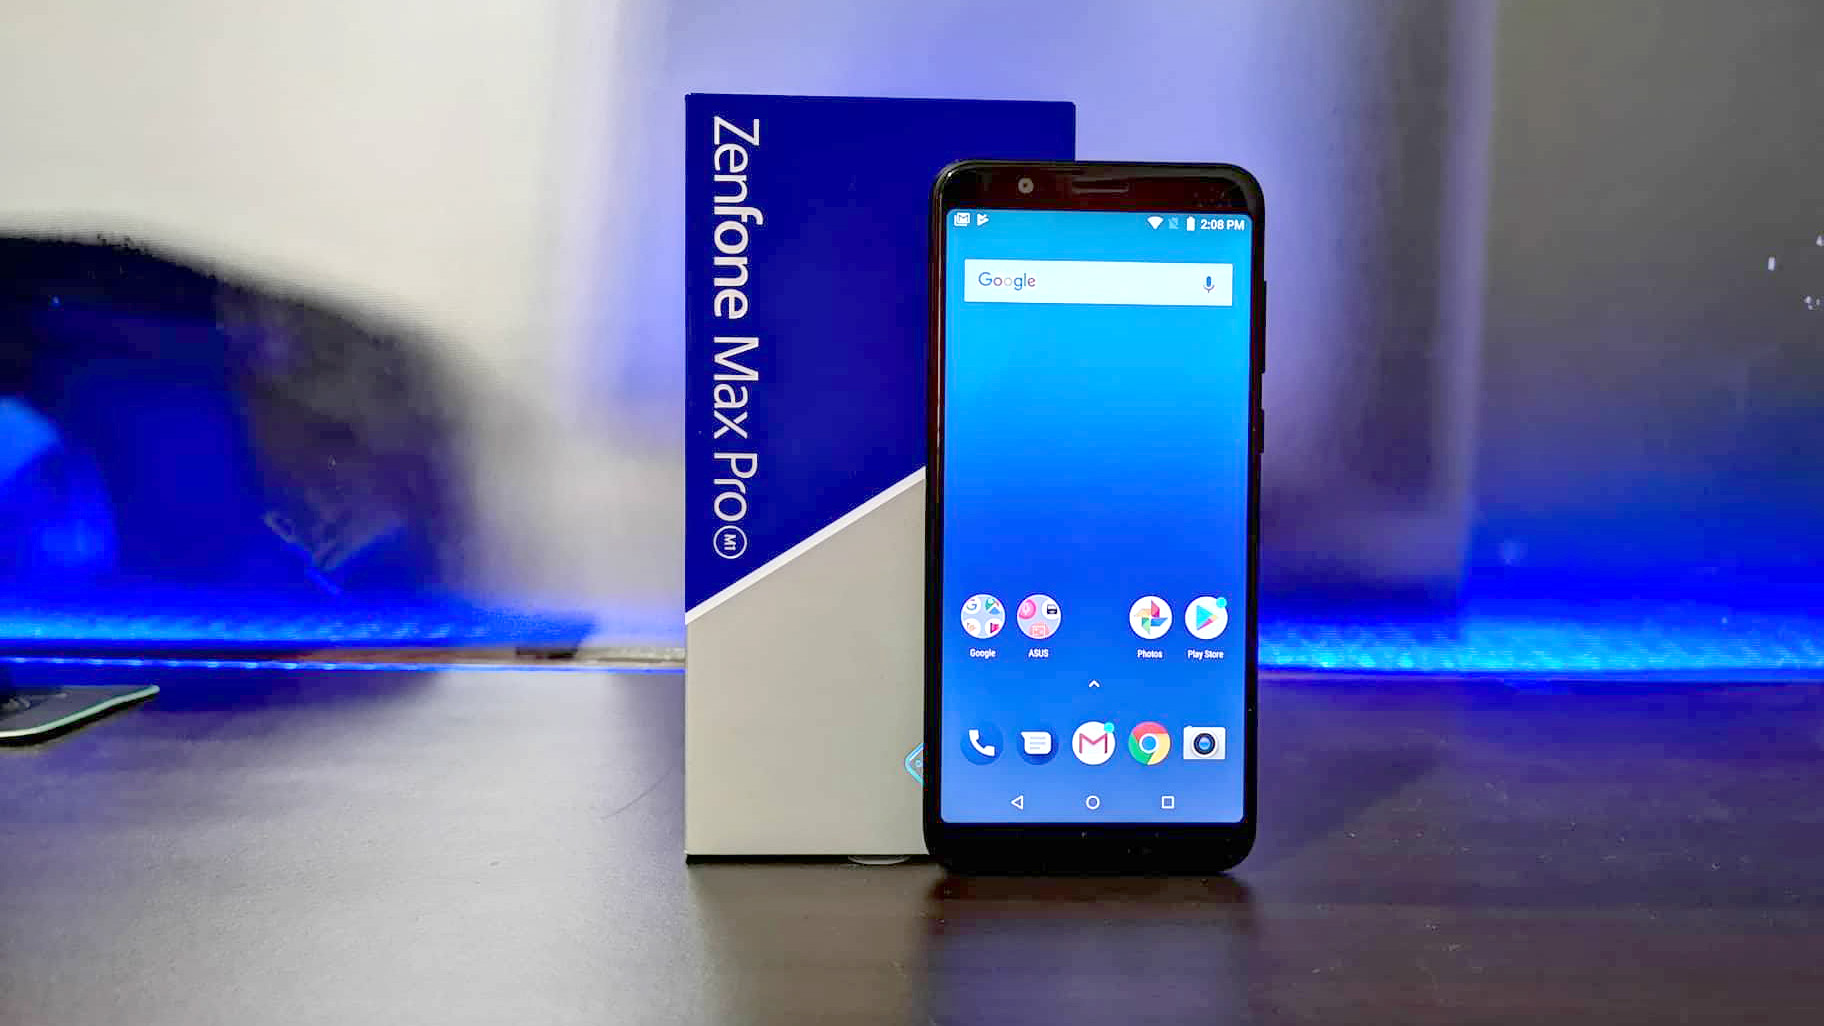 ASUS Zenfone Max Pro M1 Unboxing And Hands-On Video • Jam